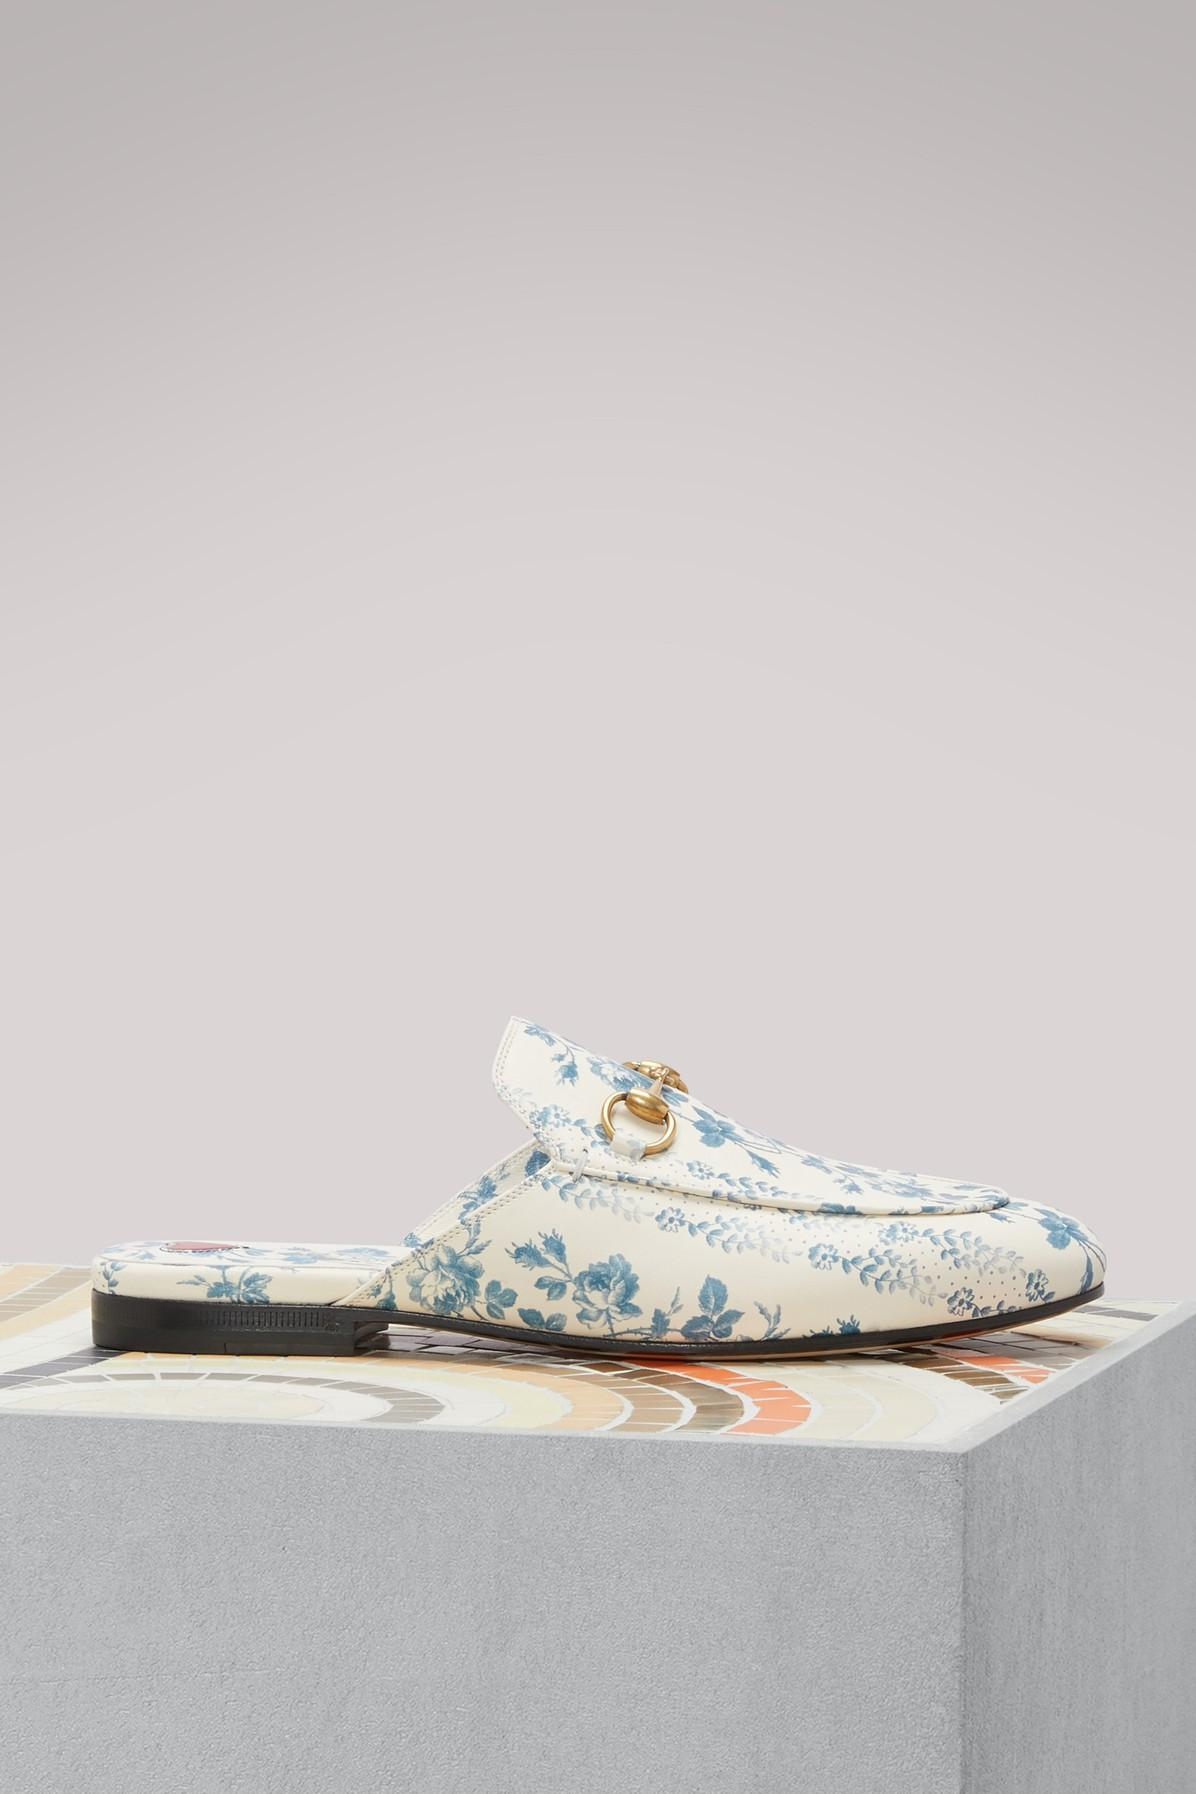 c1151aa3282 Gucci Princetown Rosebud Floral Printed Leather Mule In White